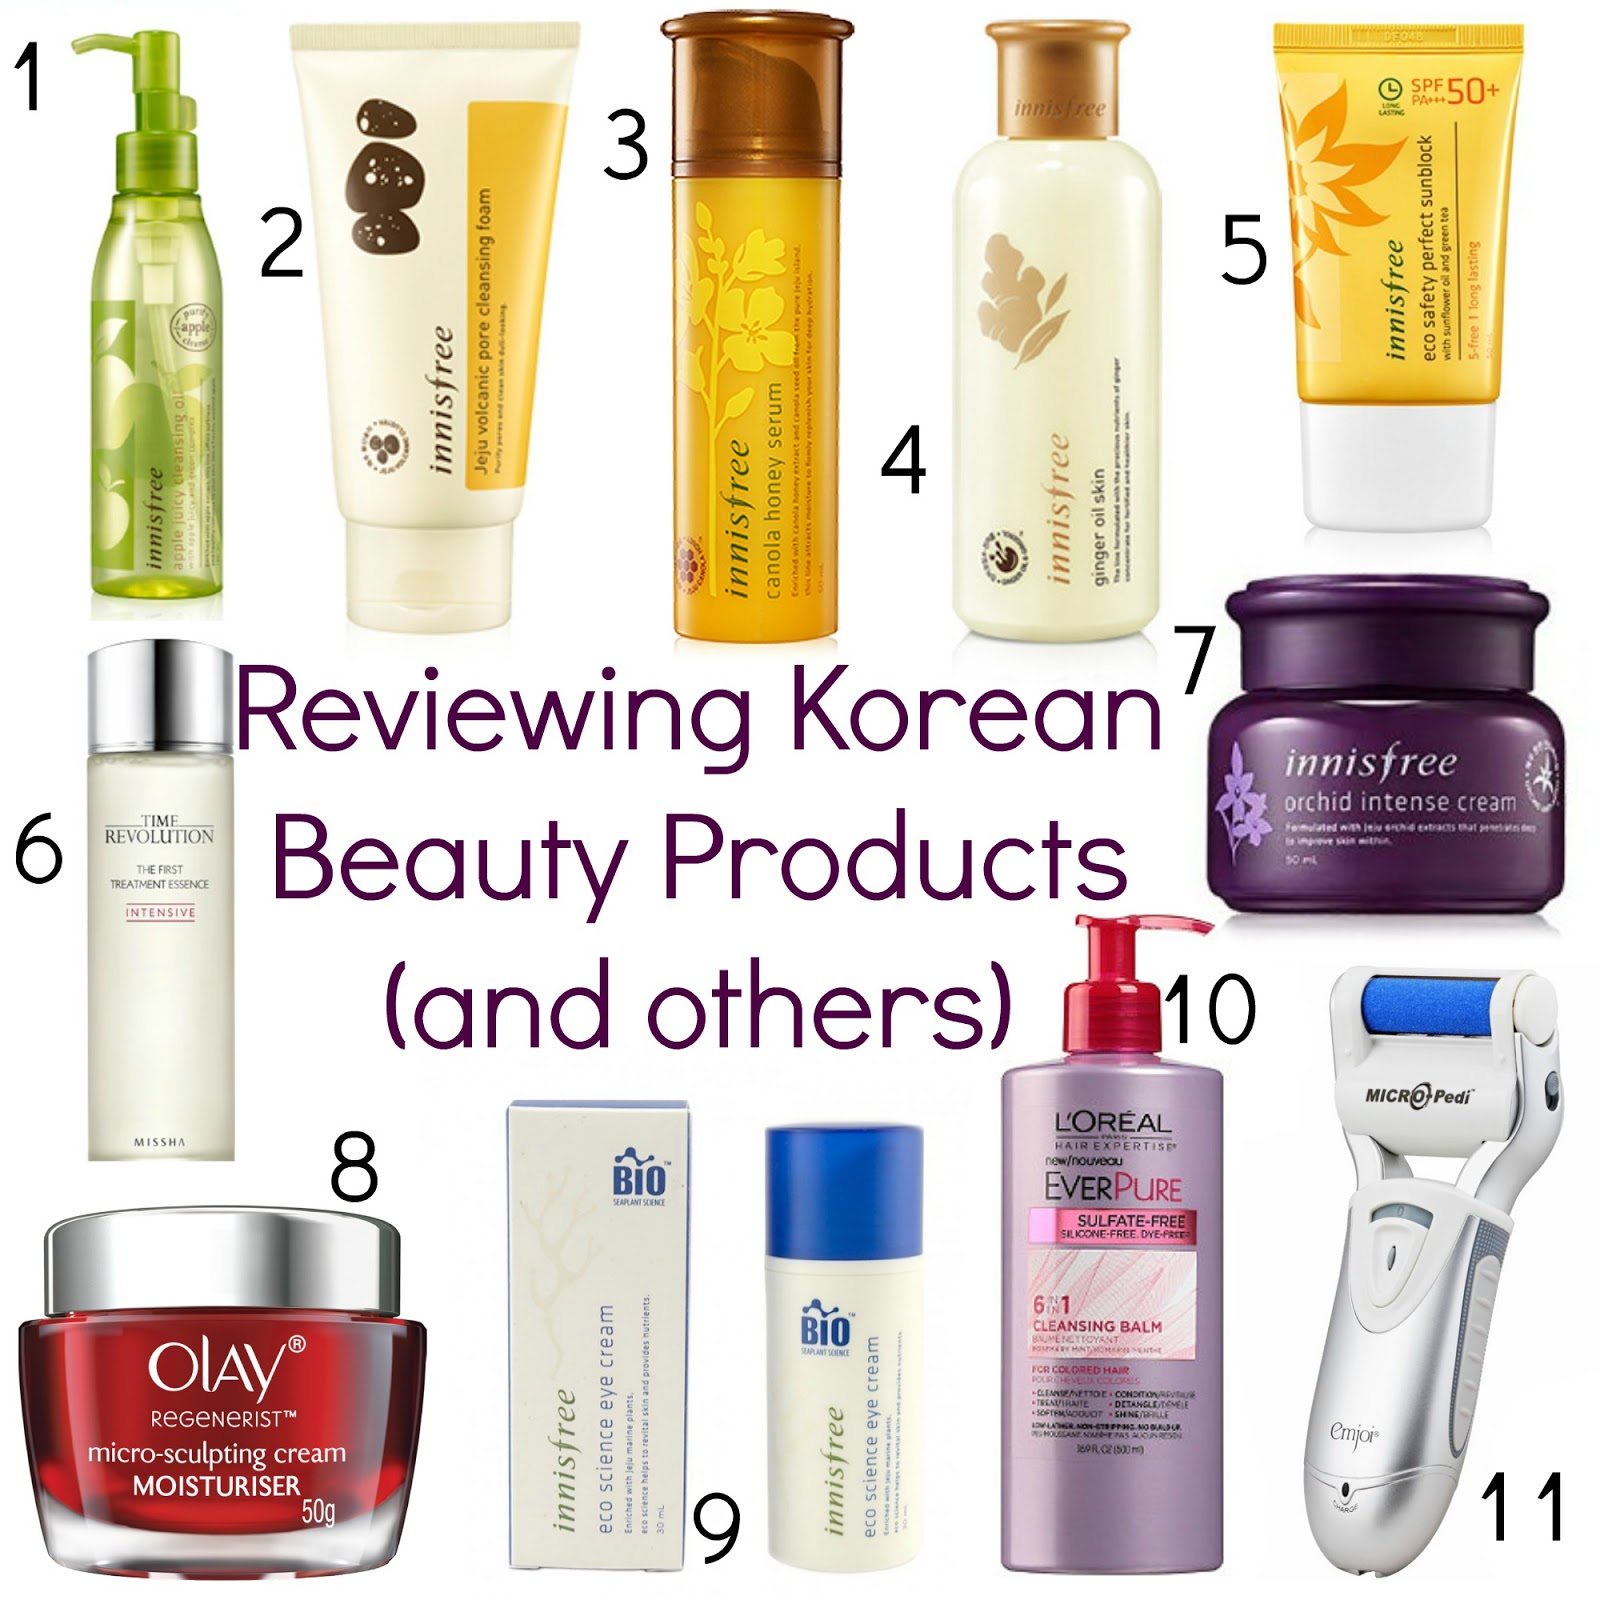 korean beauty products review, emjoi micro pedi review, L'Oreal EverPure Cleansing Balm review, Olay Regenerist Micro Sculpting Cream review